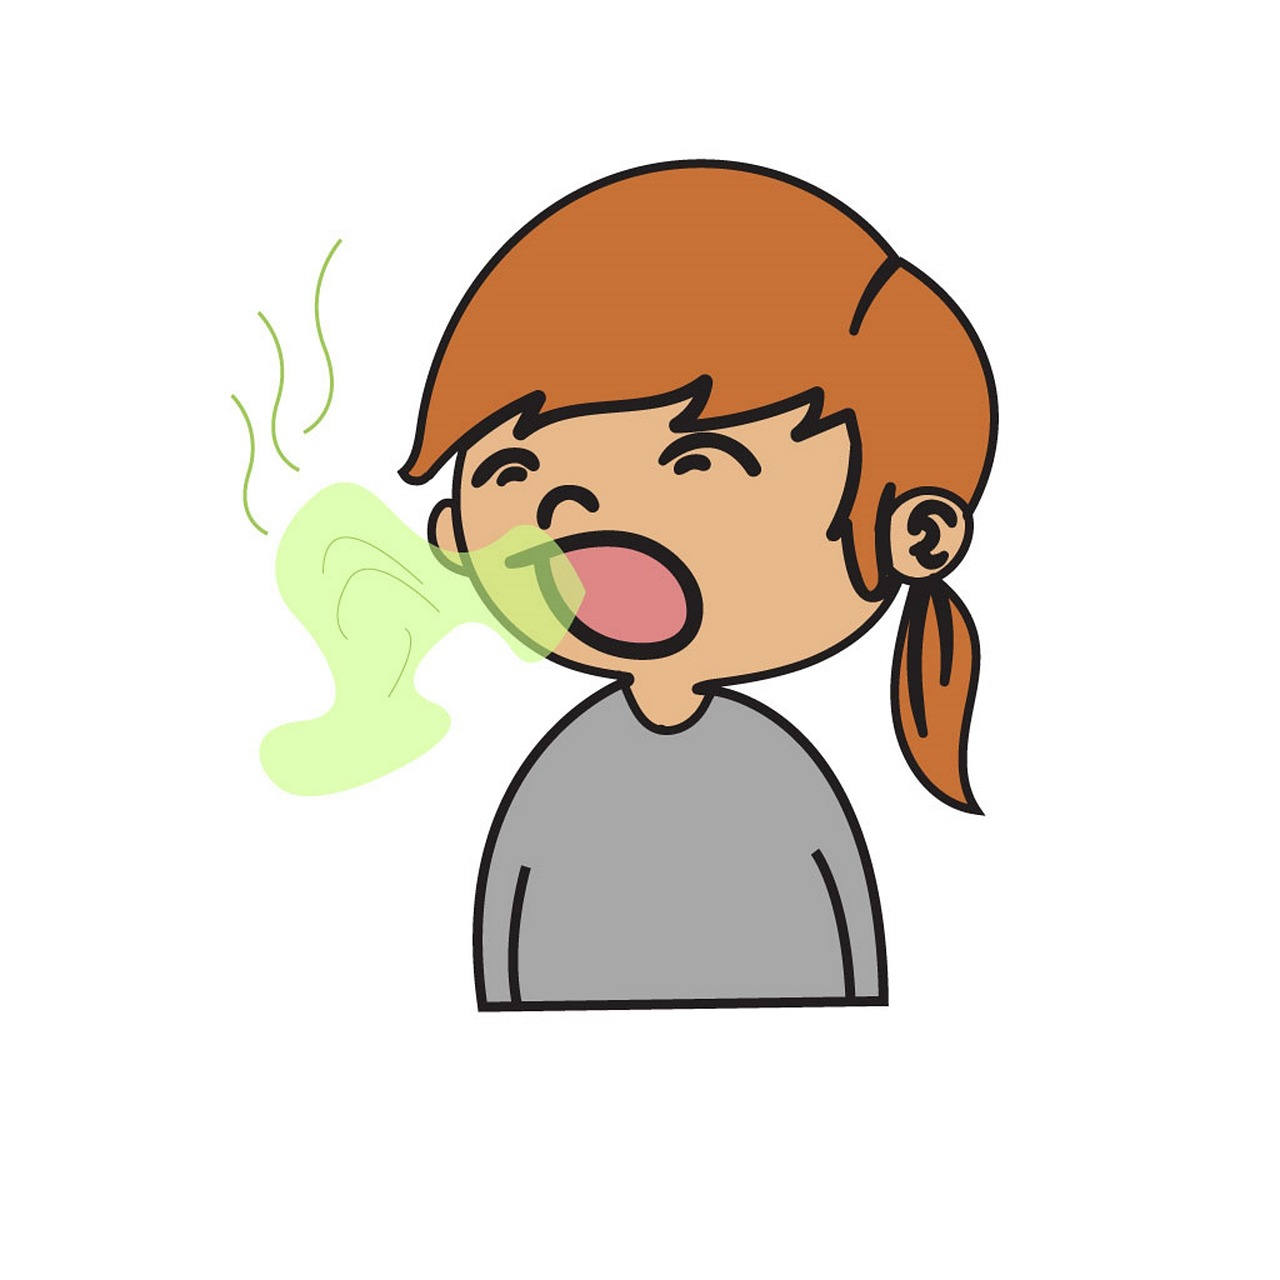 5 Worst Foods that Cause Bad Breath